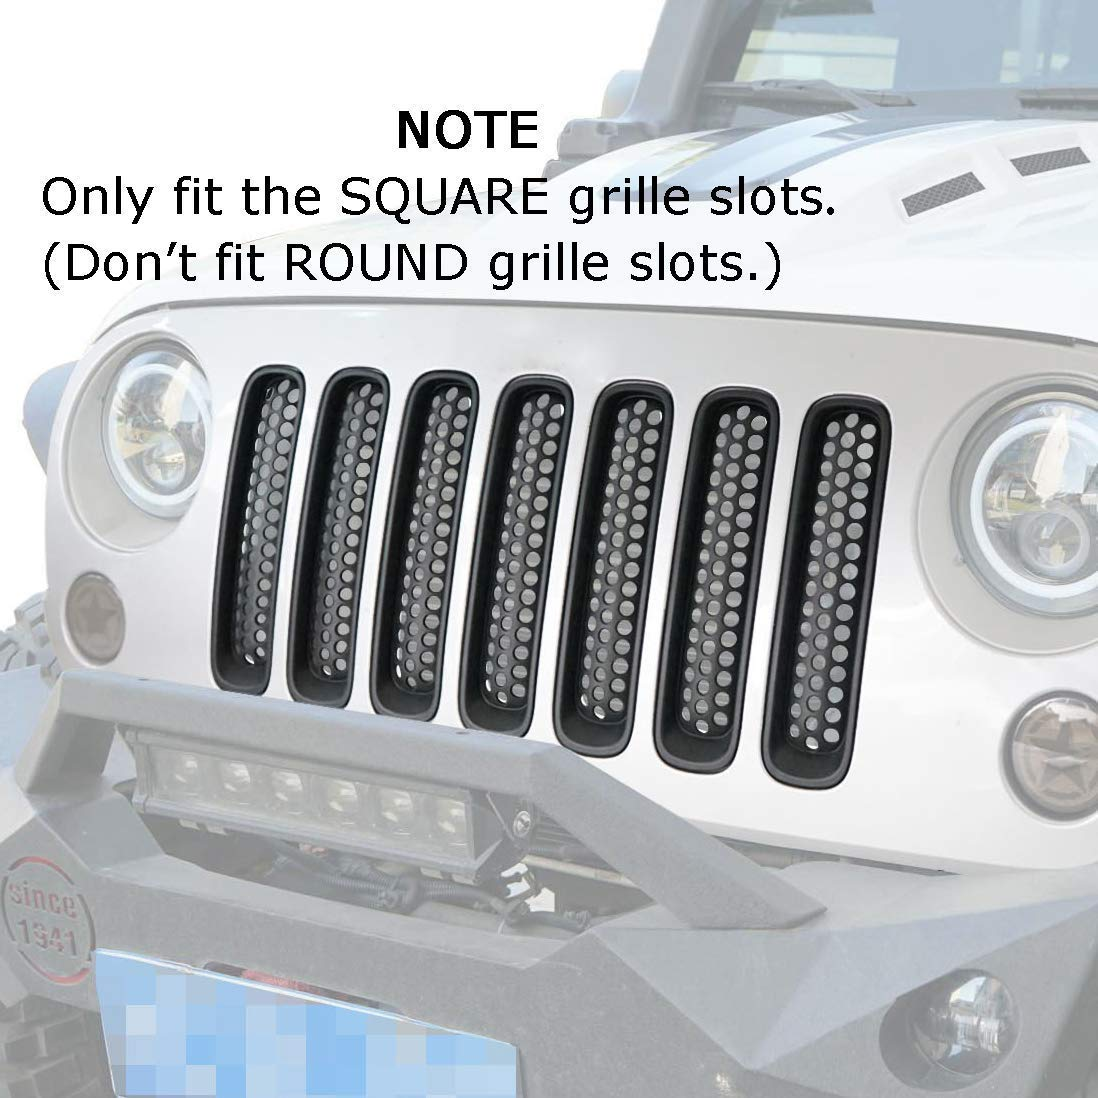 Jeep Wrangler JK Matte Black Clip-in Front Grille Mesh Inserts Cover for 2016&2017 Factory Grille Square Slots (Pack of 7) Hooke Road